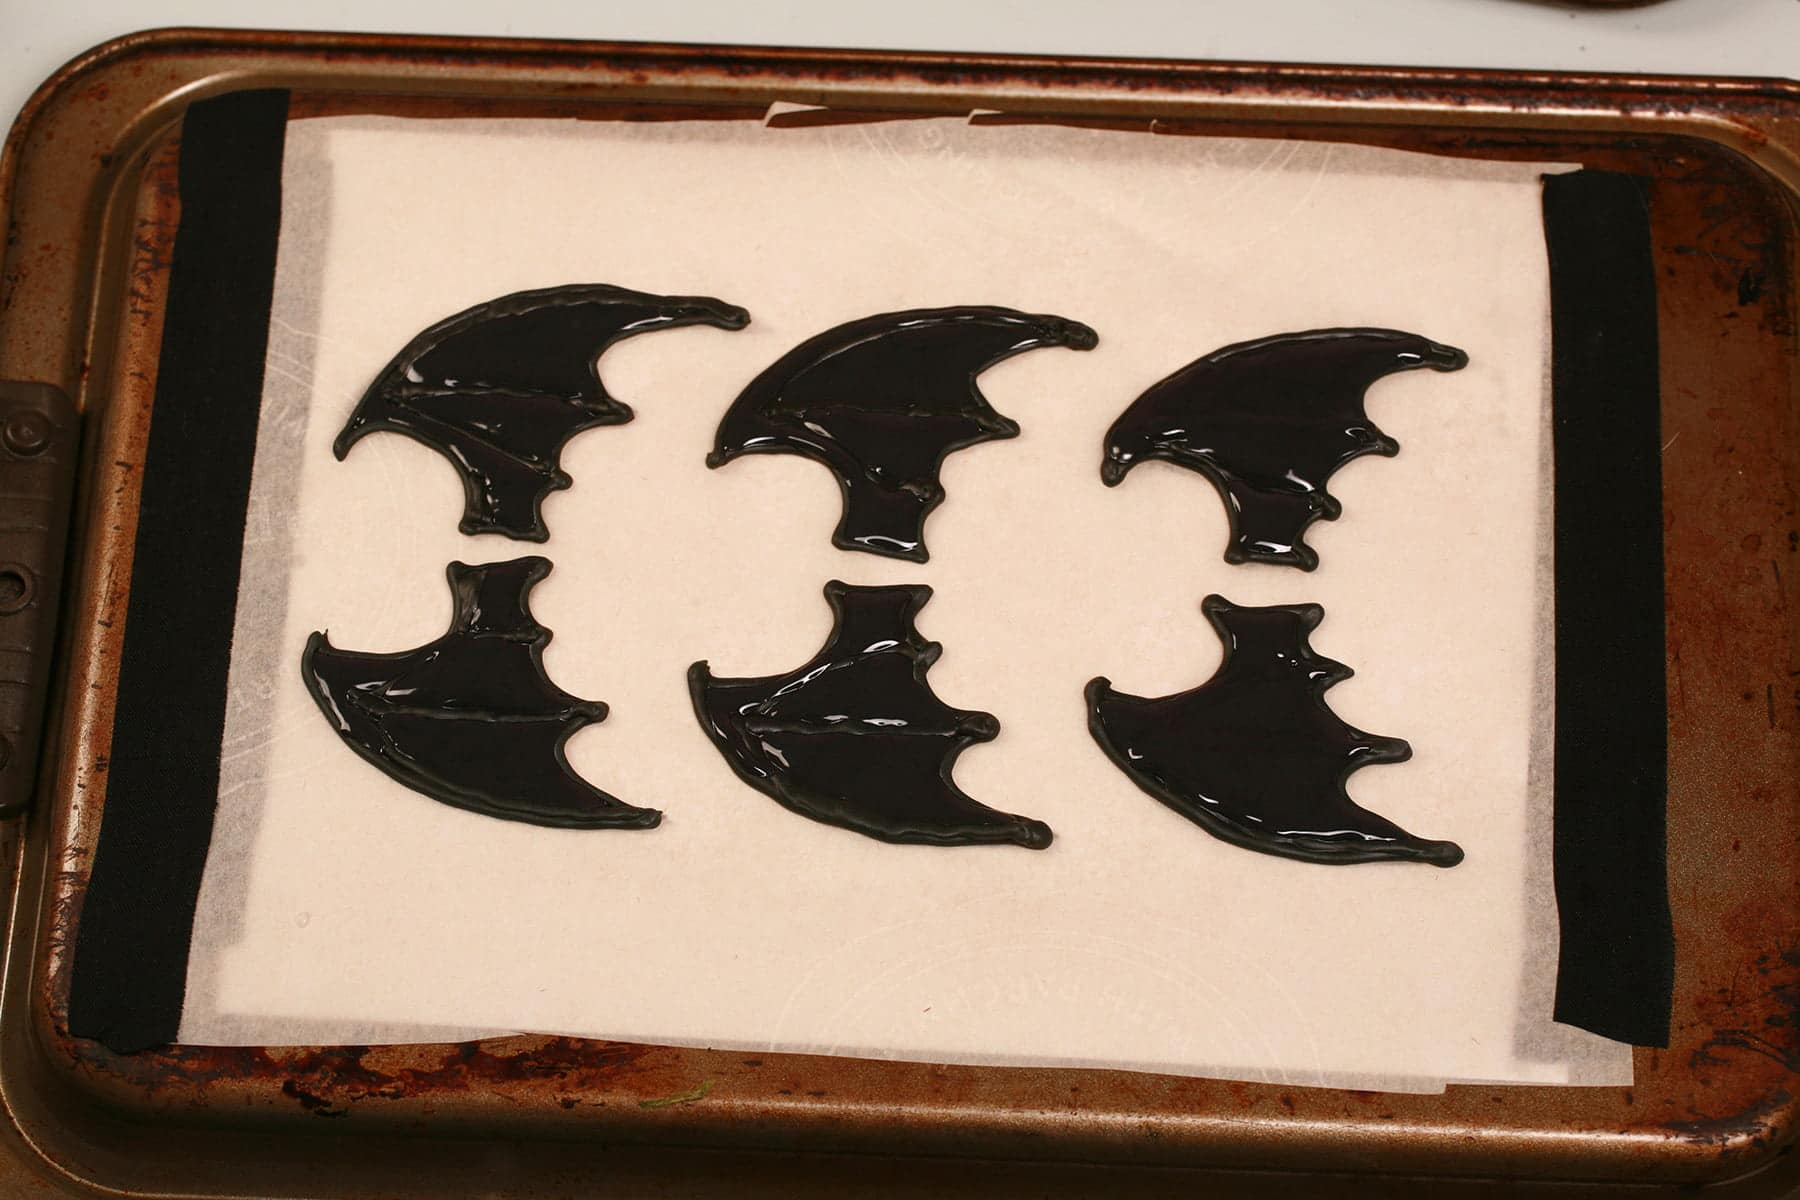 3 sets of black frosting bat wings, piped on a parchment lined baking sheet.